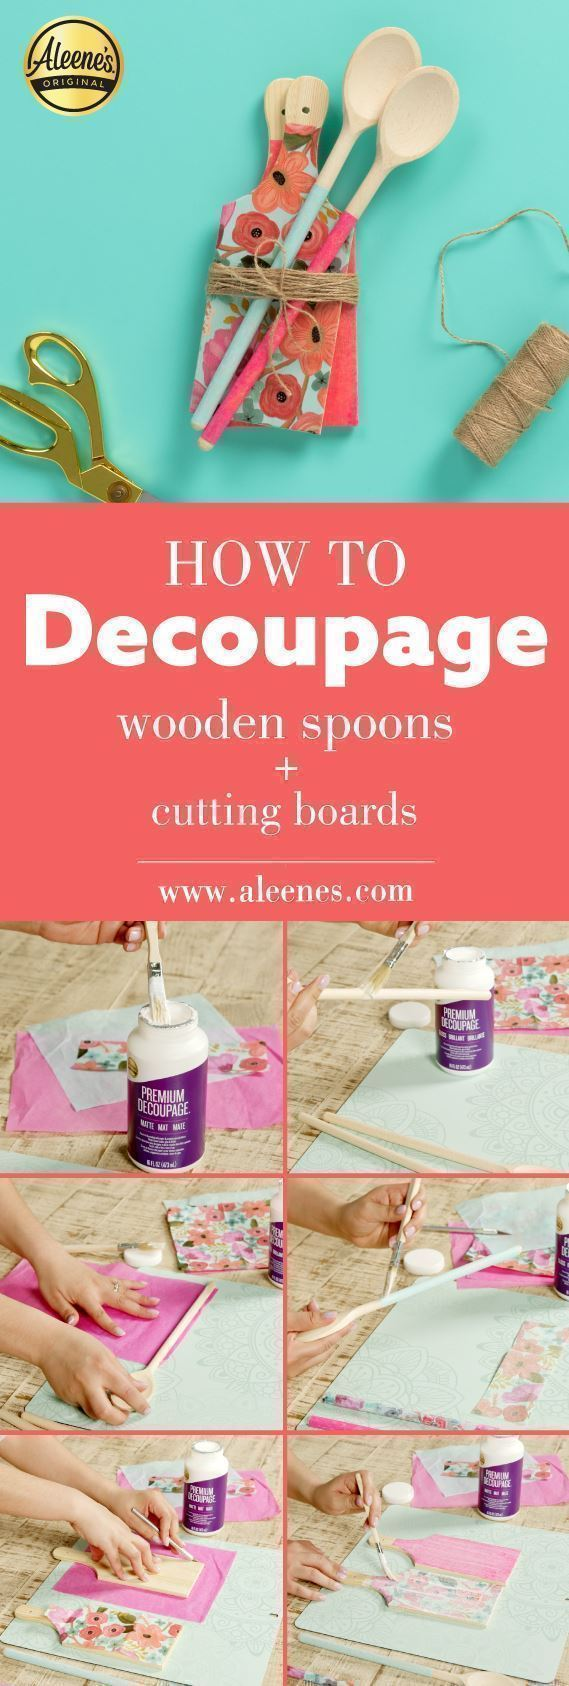 Aleene's How To Decoupage Kitchen Accessories